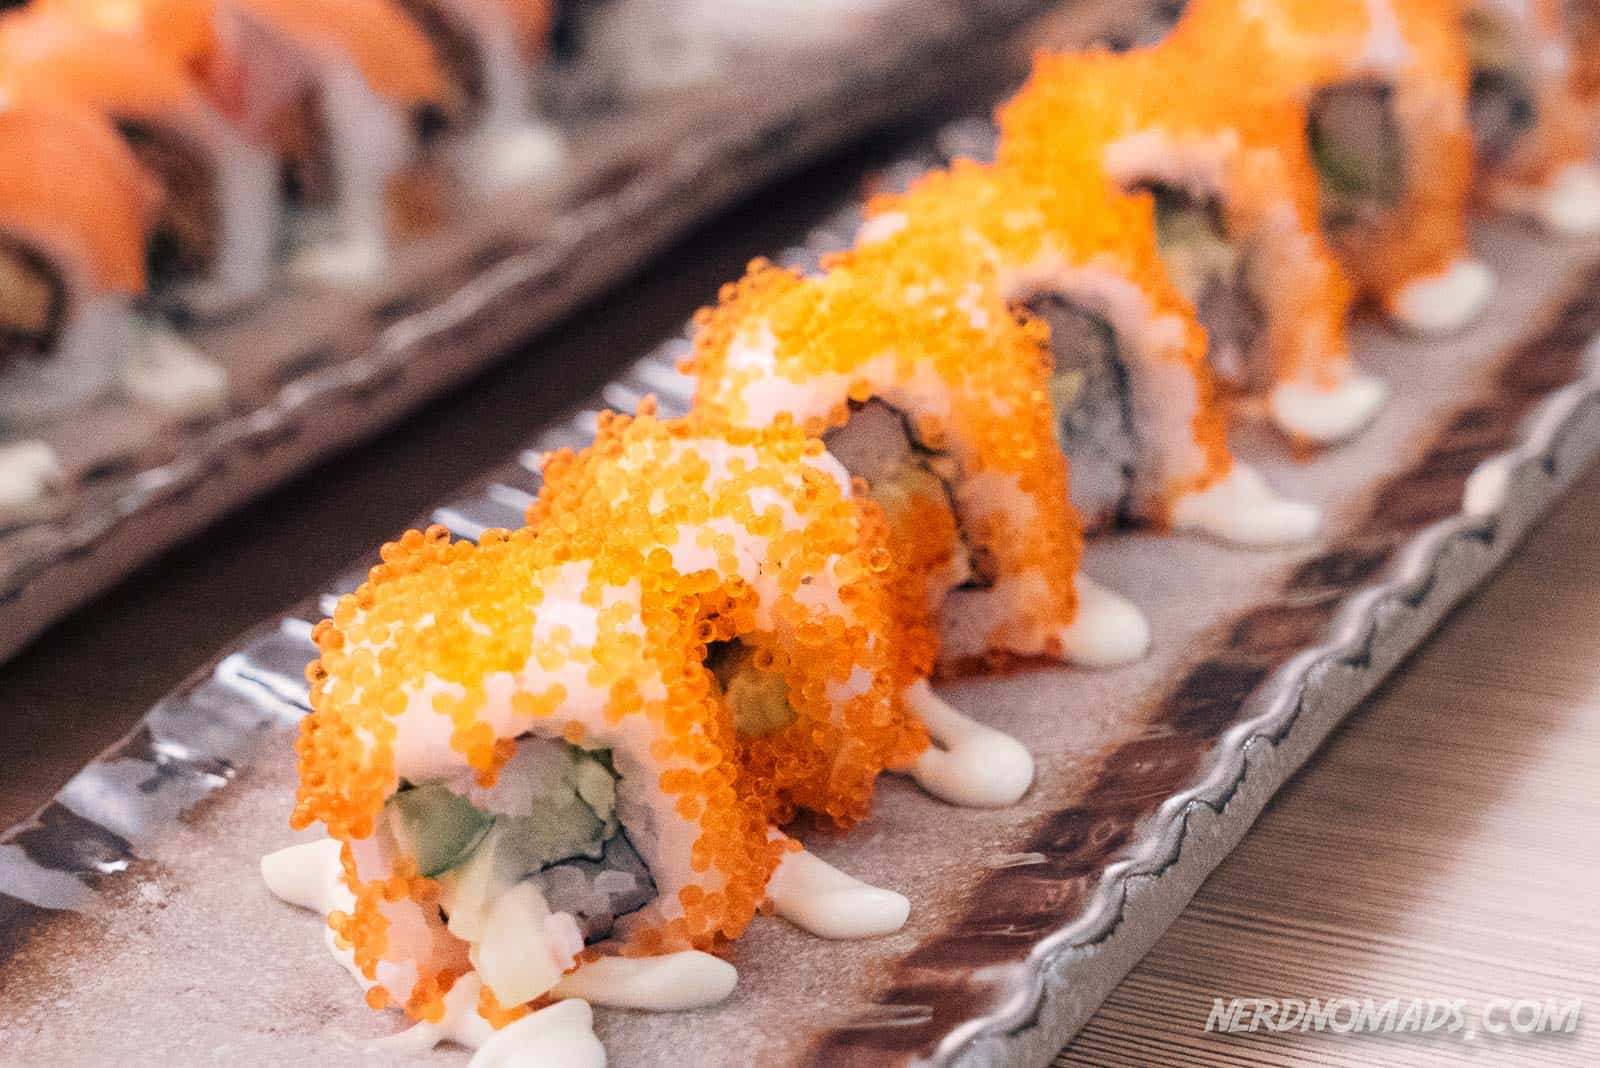 Japanese Cuisine Eat Like A Japanese Must Try Japanese Food Nerd Nomads